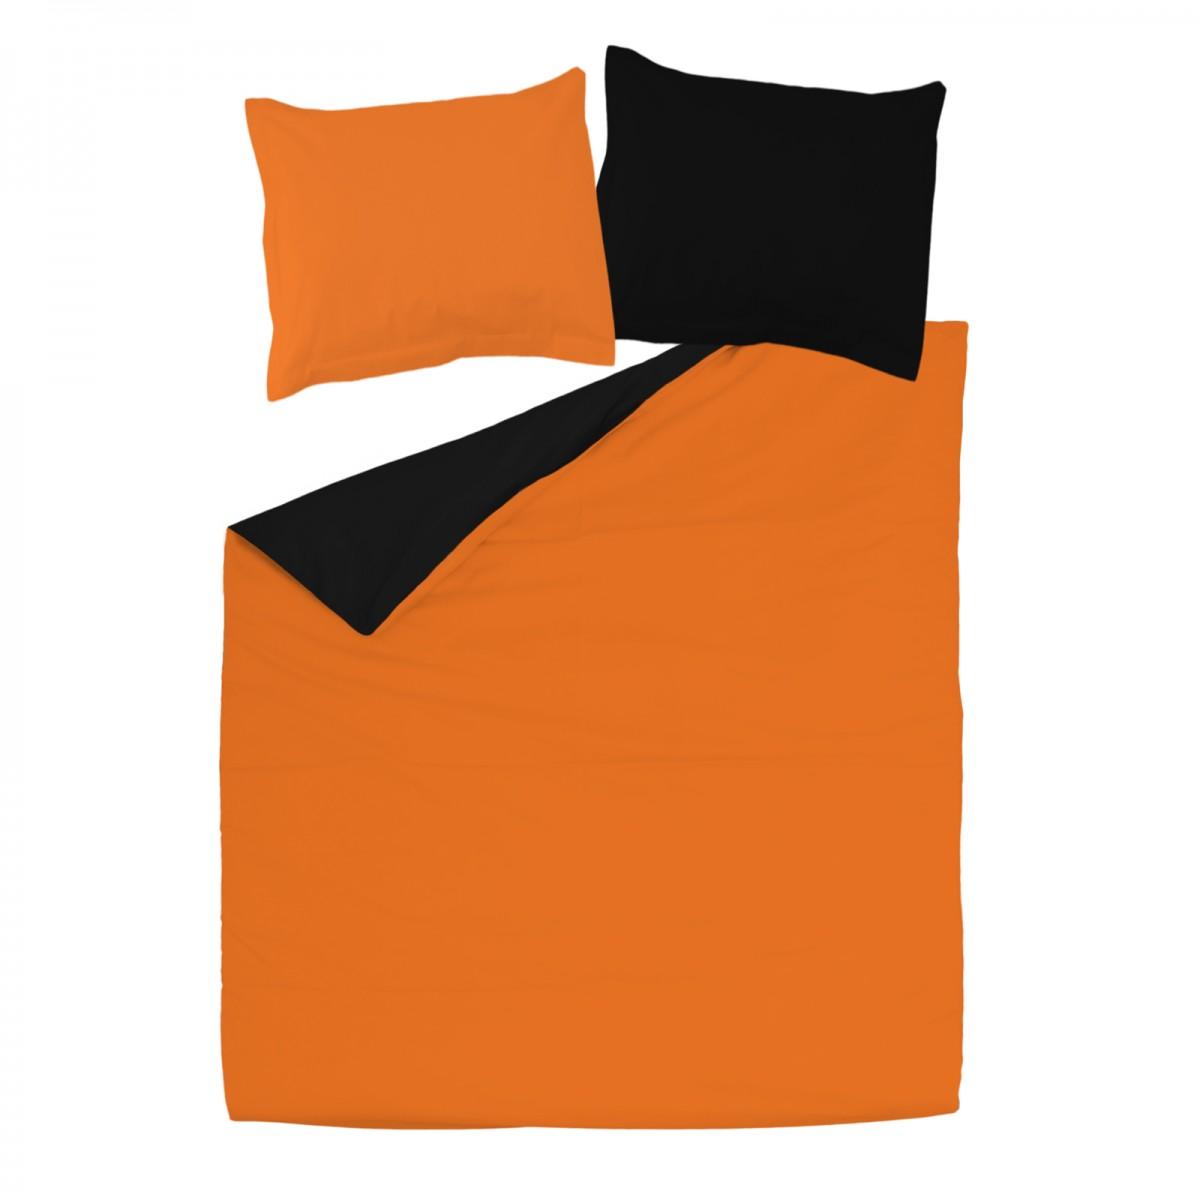 noir et orange 100 coton parure de lit r versible. Black Bedroom Furniture Sets. Home Design Ideas